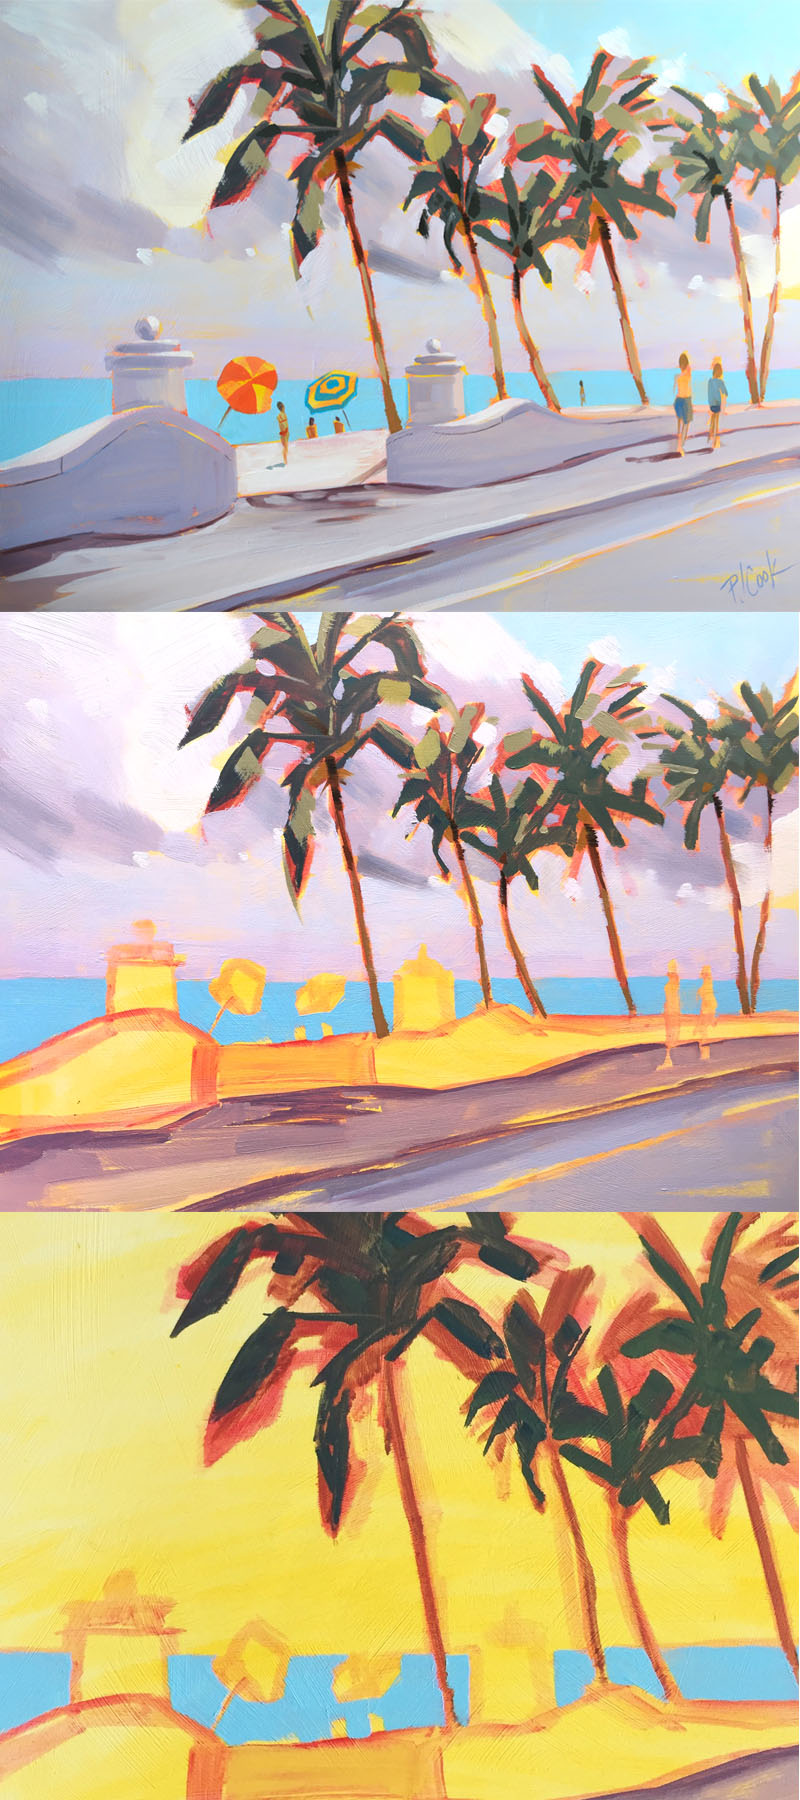 Different stages of oil painting of a Ft Lauderdale beach.